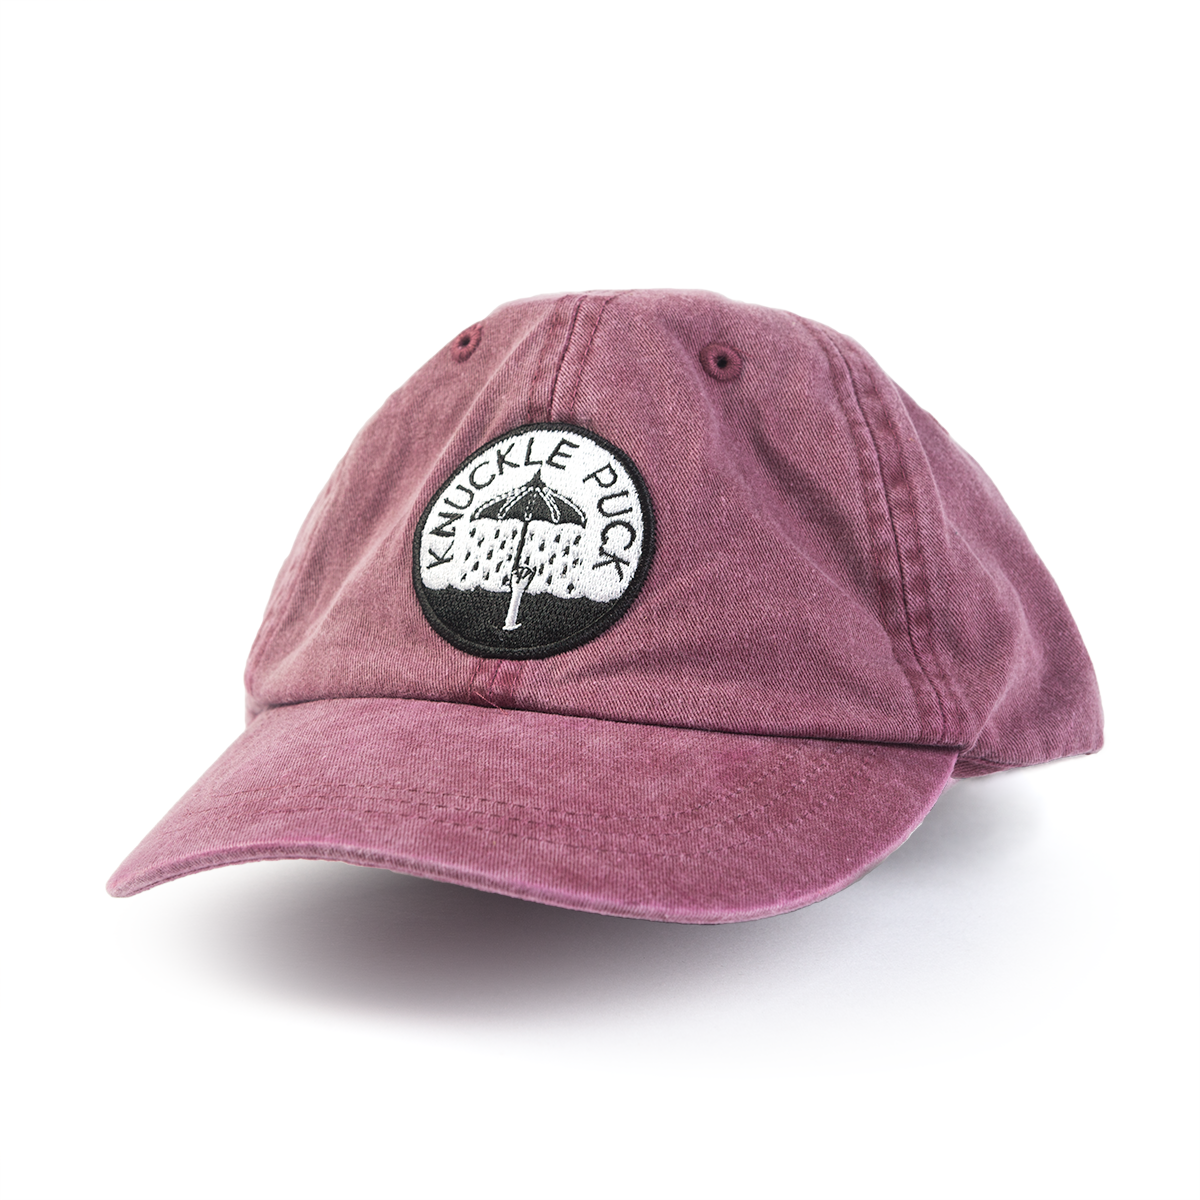 Maroon Baseball Cap - Knuckle Puck UK   EU 8884b3a96ac